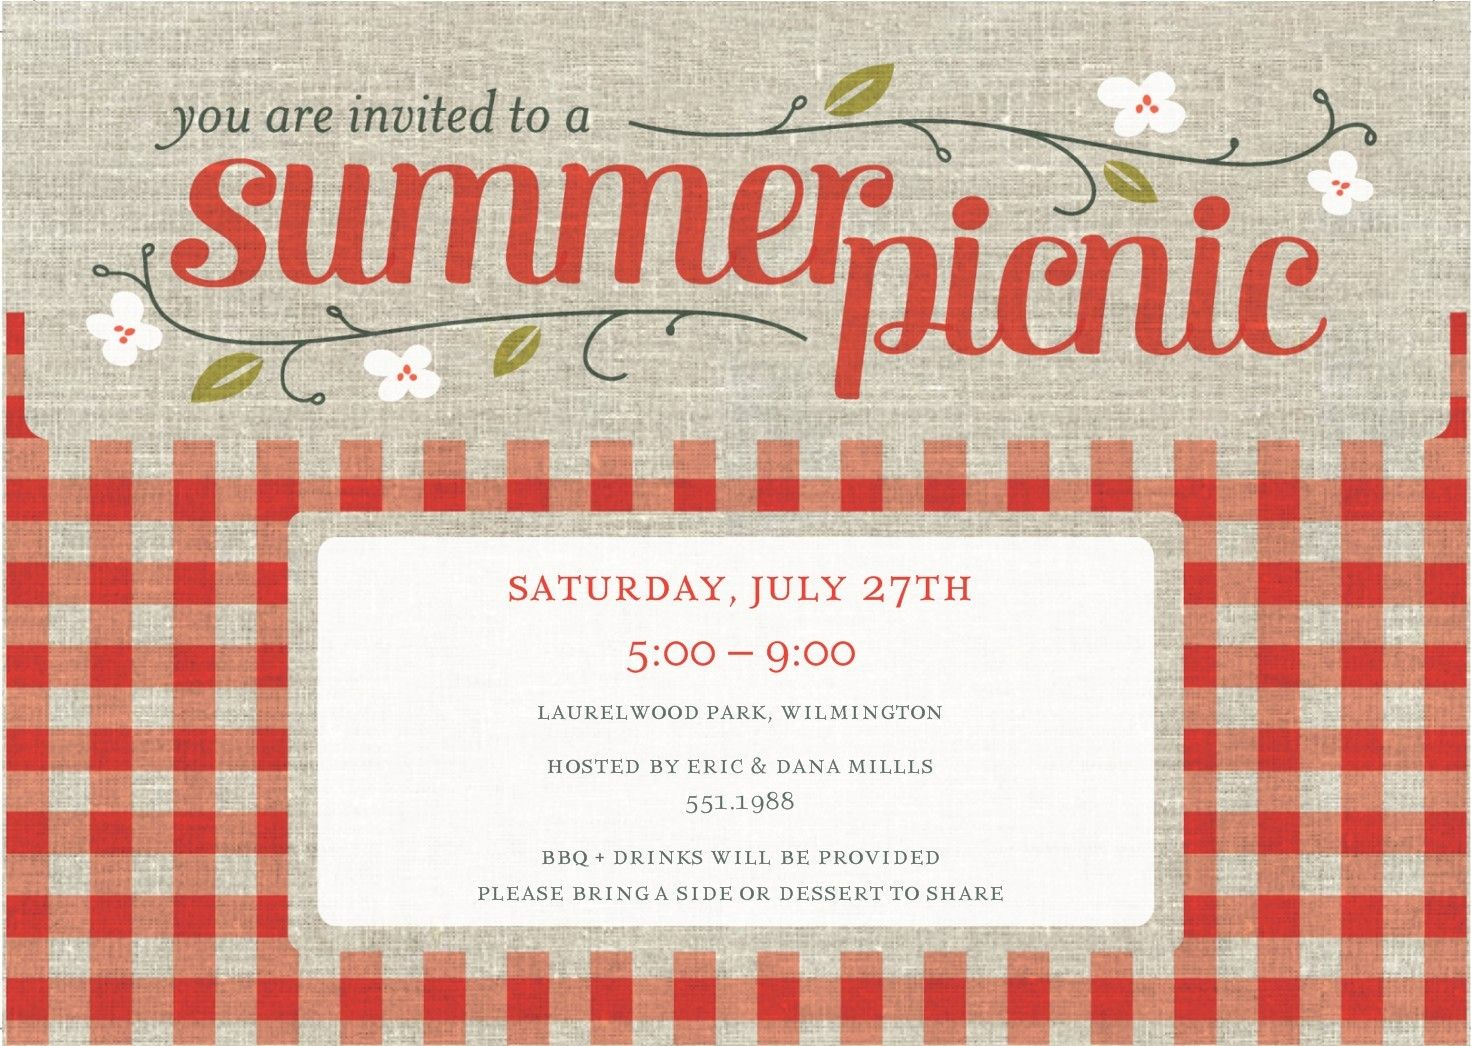 picnic invites templates - Expin.memberpro.co